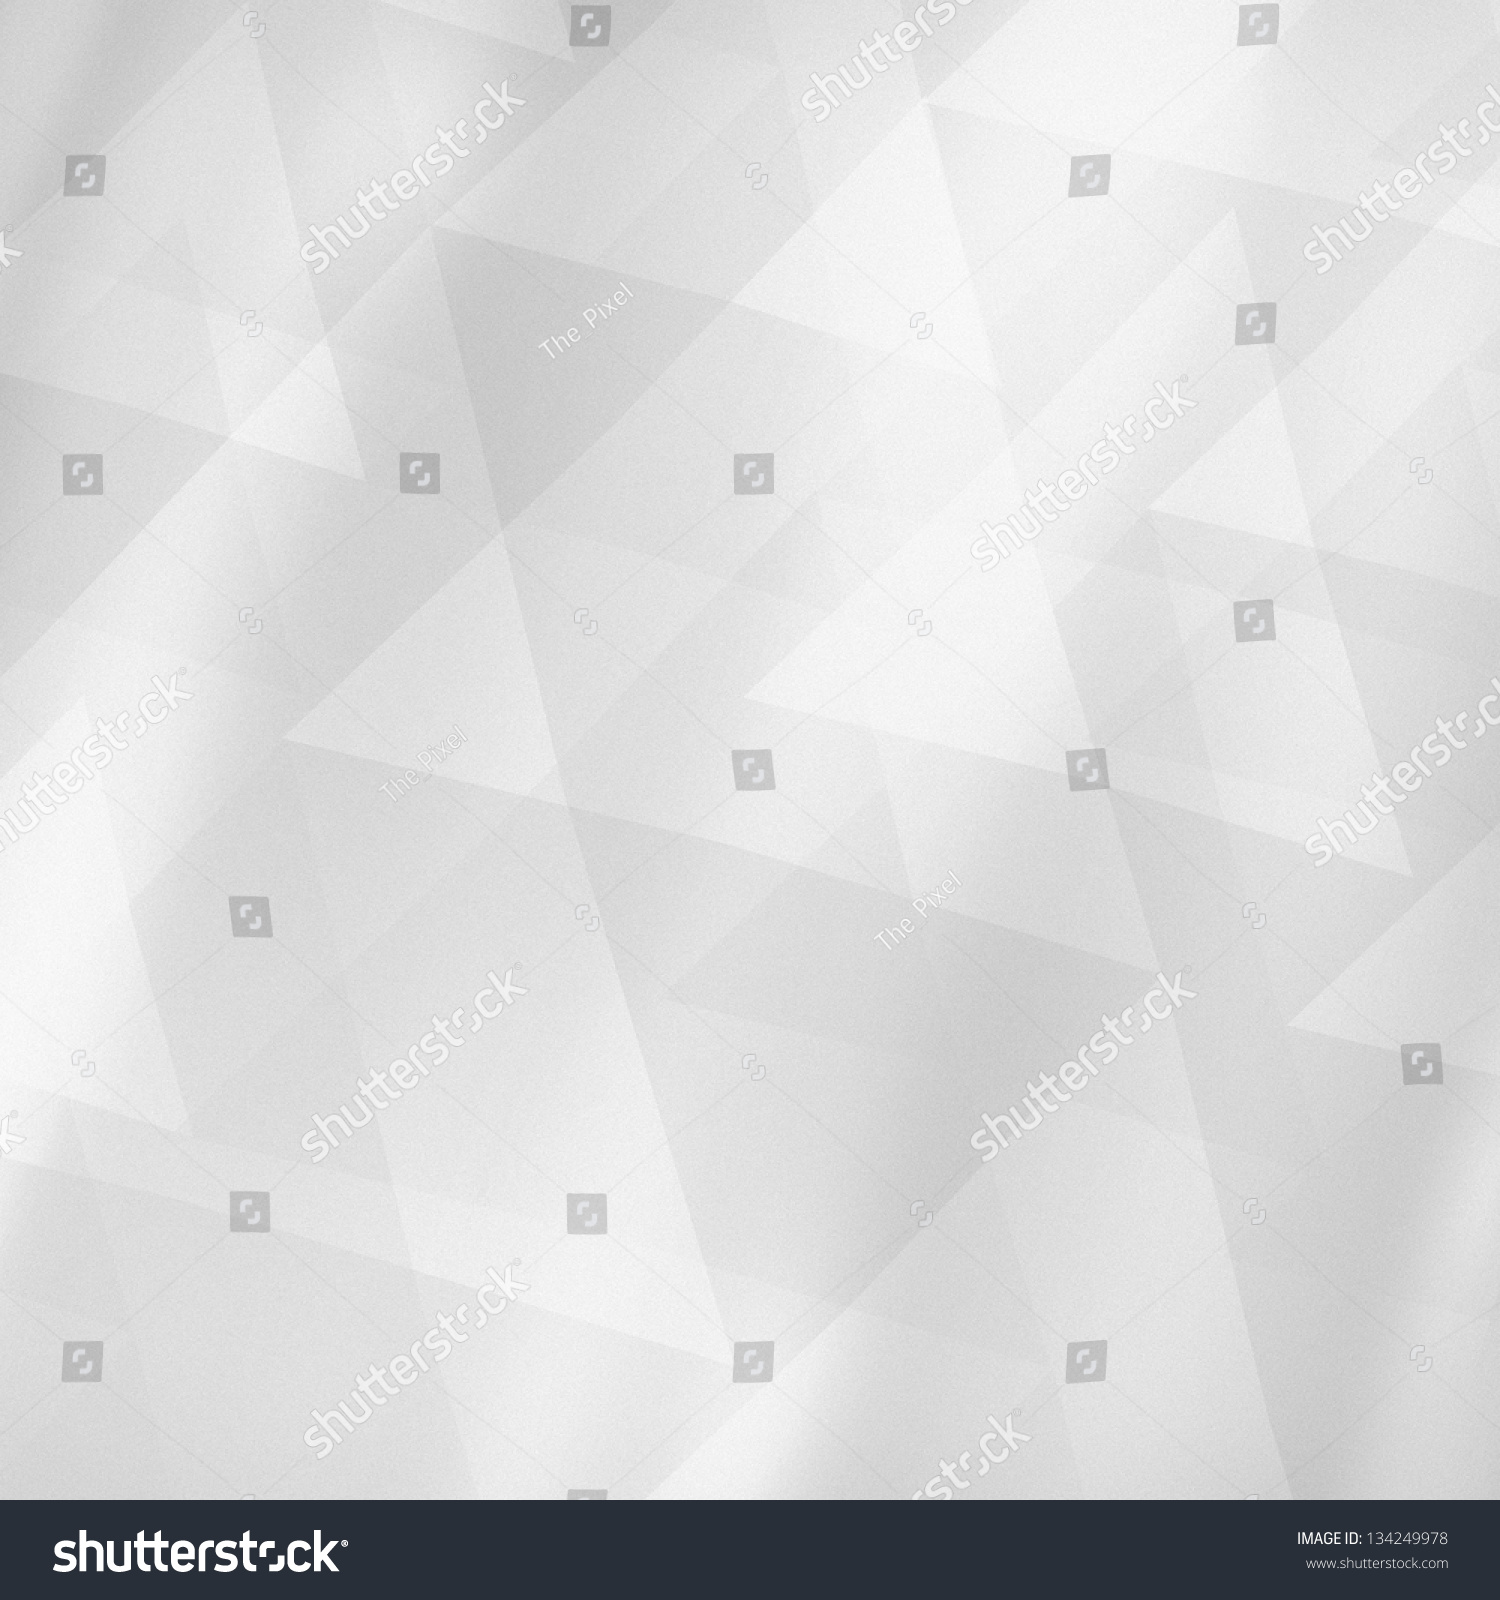 White, Grey Background Abstract Design Texture. High